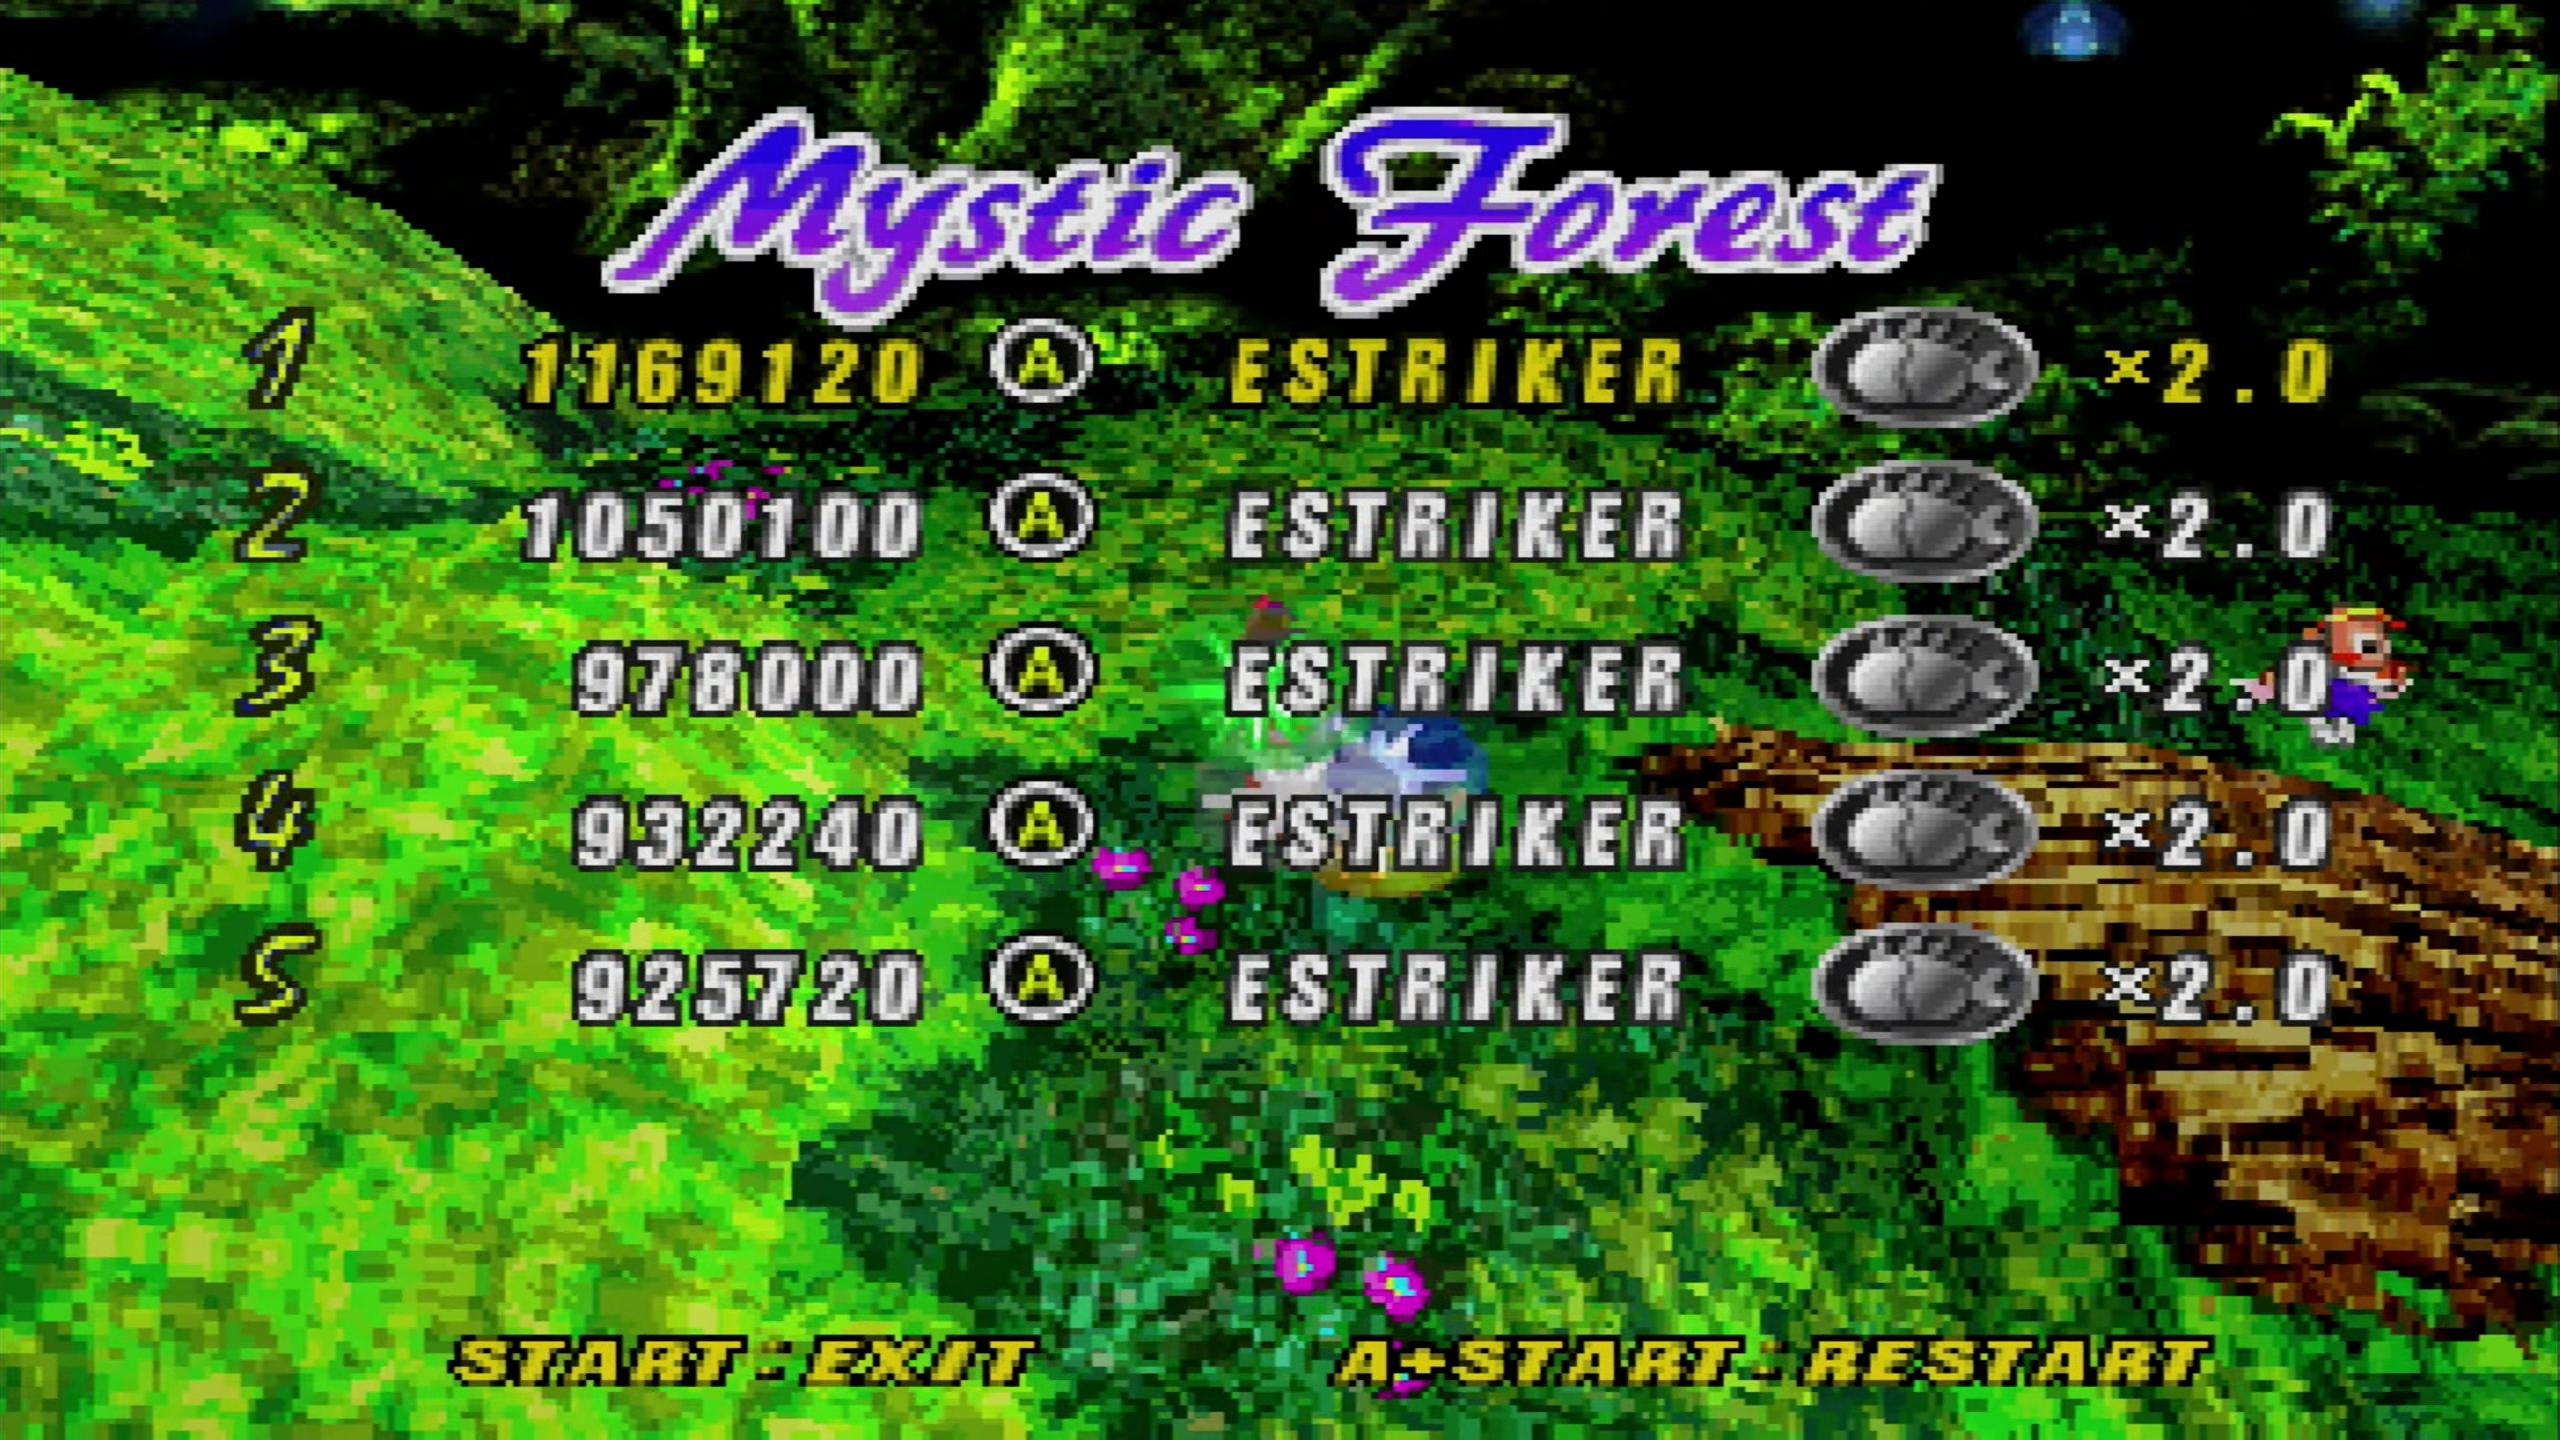 ElectricStriker: NiGHTS Into Dreams: Mystic Forest (Sega Saturn) 1,169,120 points on 2018-12-22 15:49:06